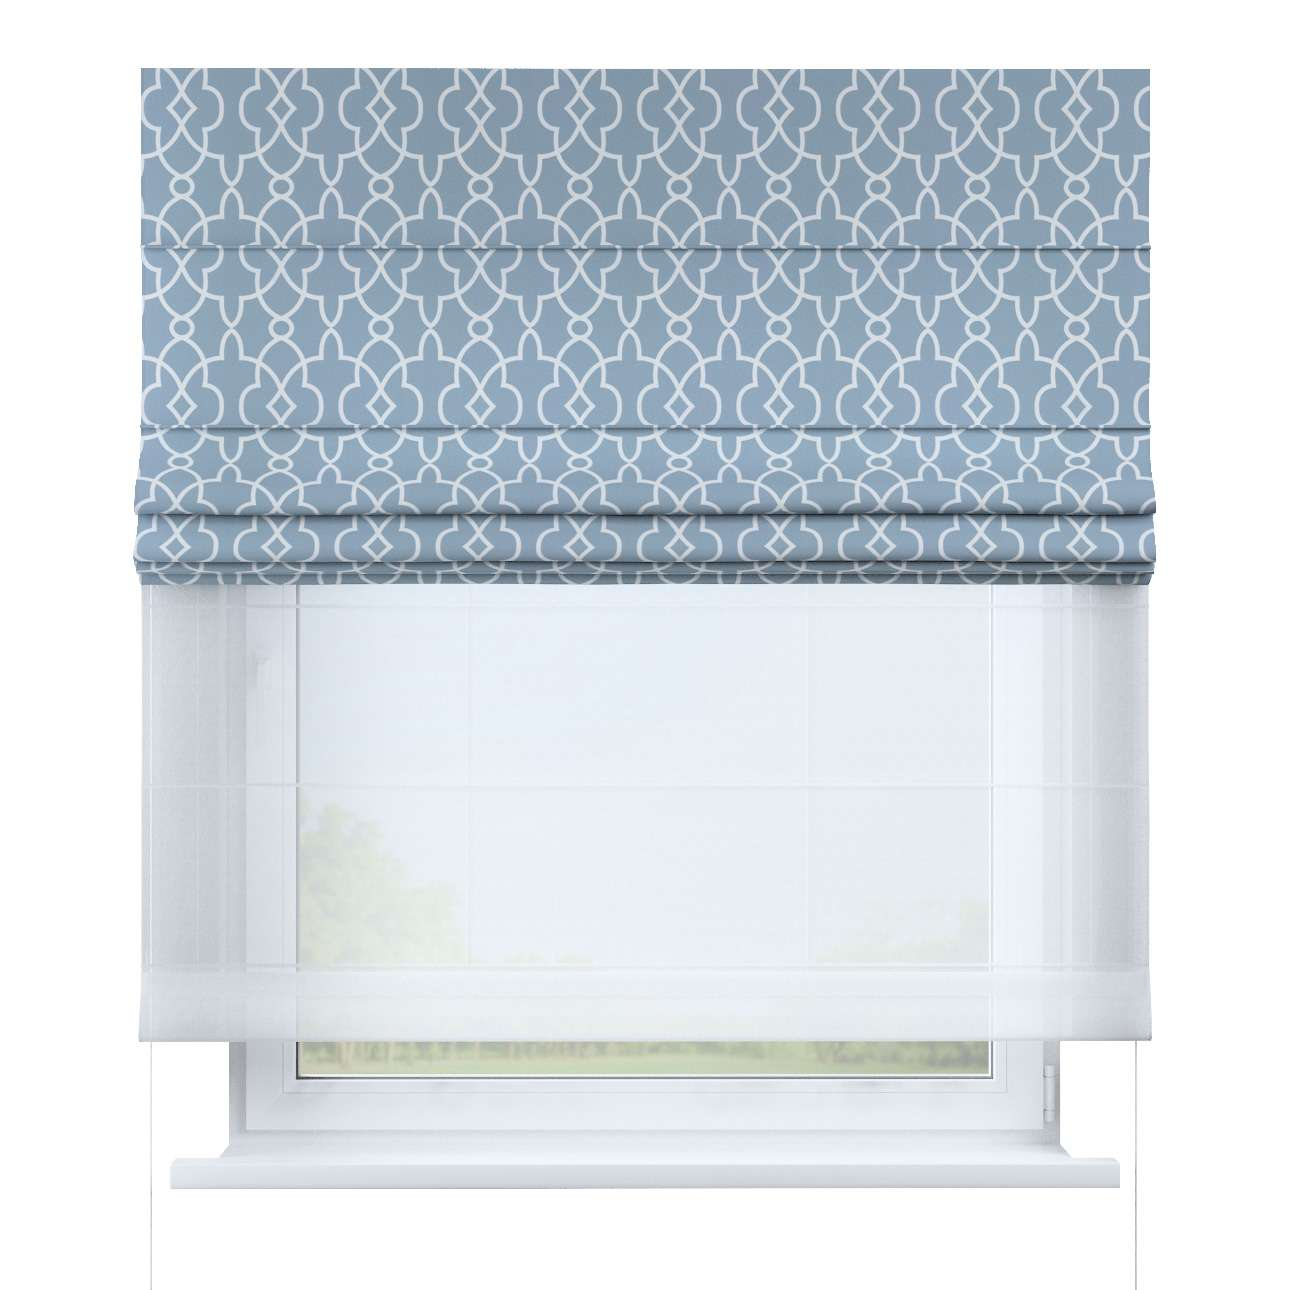 Voile And Fabric Roman Blind Duo Ii White Moroccan Style Pattern On A Blue Background 142 22 130 170 Cm Dekoria